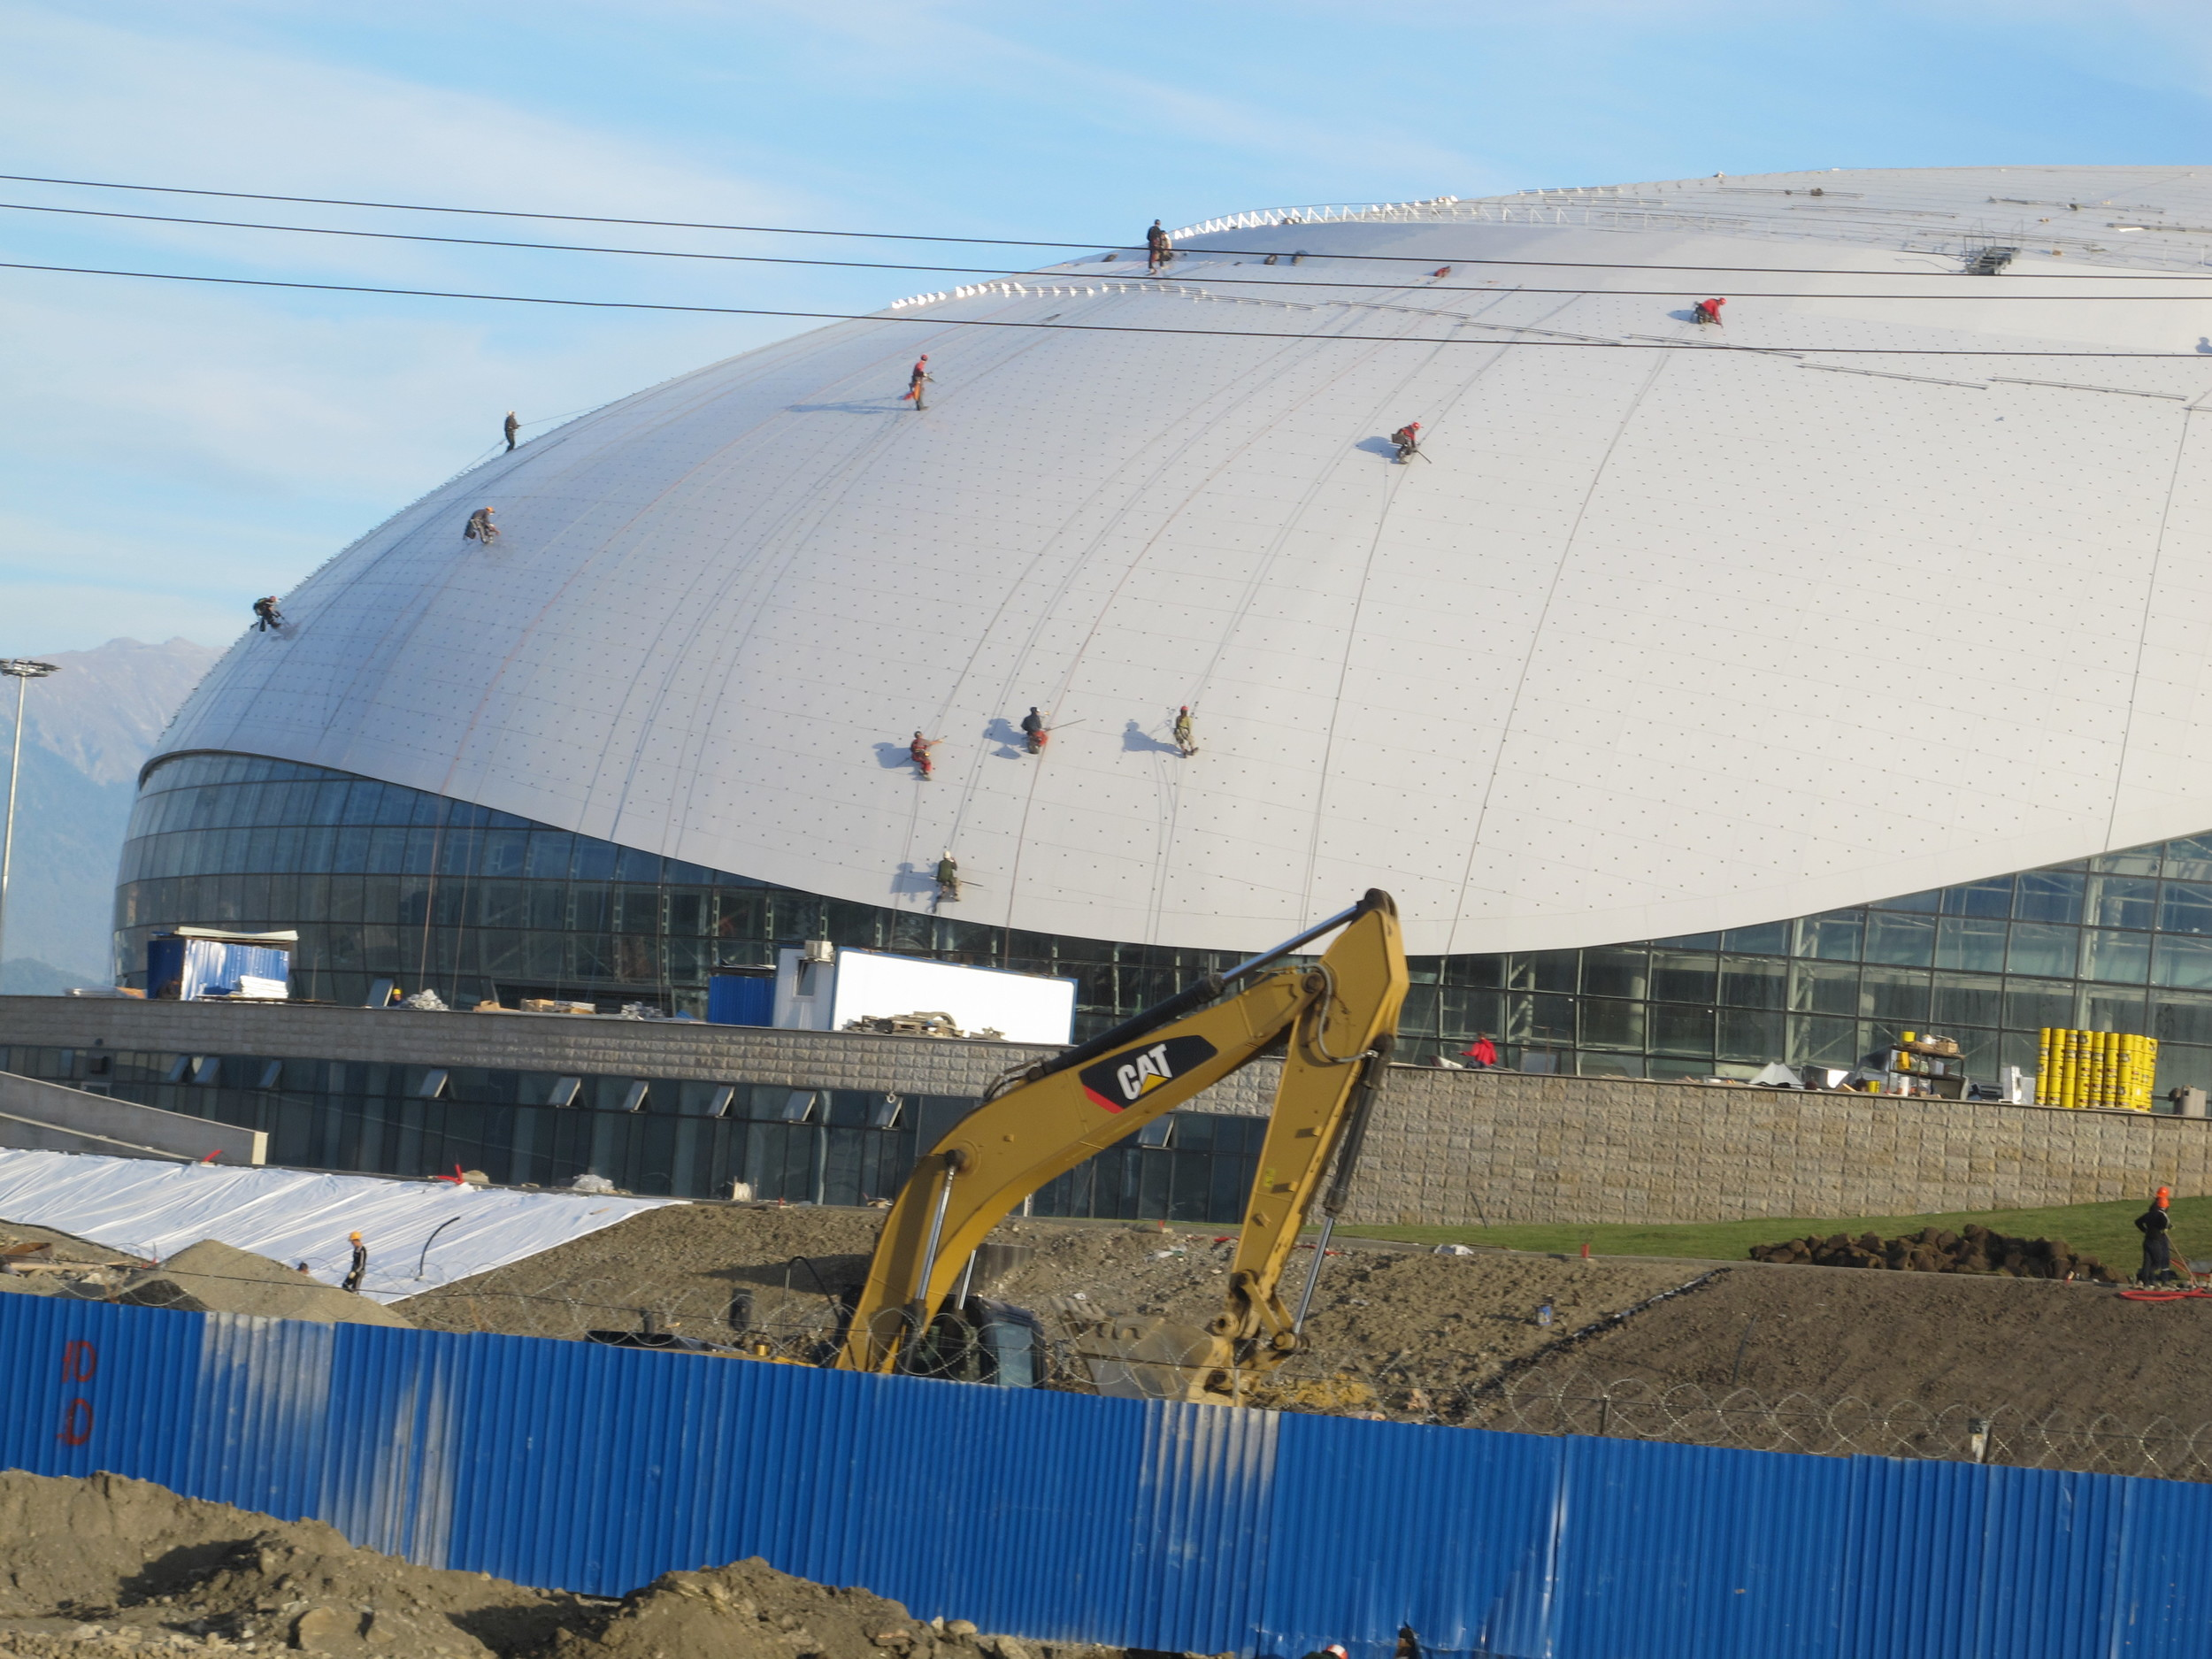 Those ant-like figures are construction workers on ropes atop the new Bolshoi Ice Dome hockey arena in the coastal Olympic complex. The roof of the dome is like a curved TV screen on which images will be projected during the Olympics.